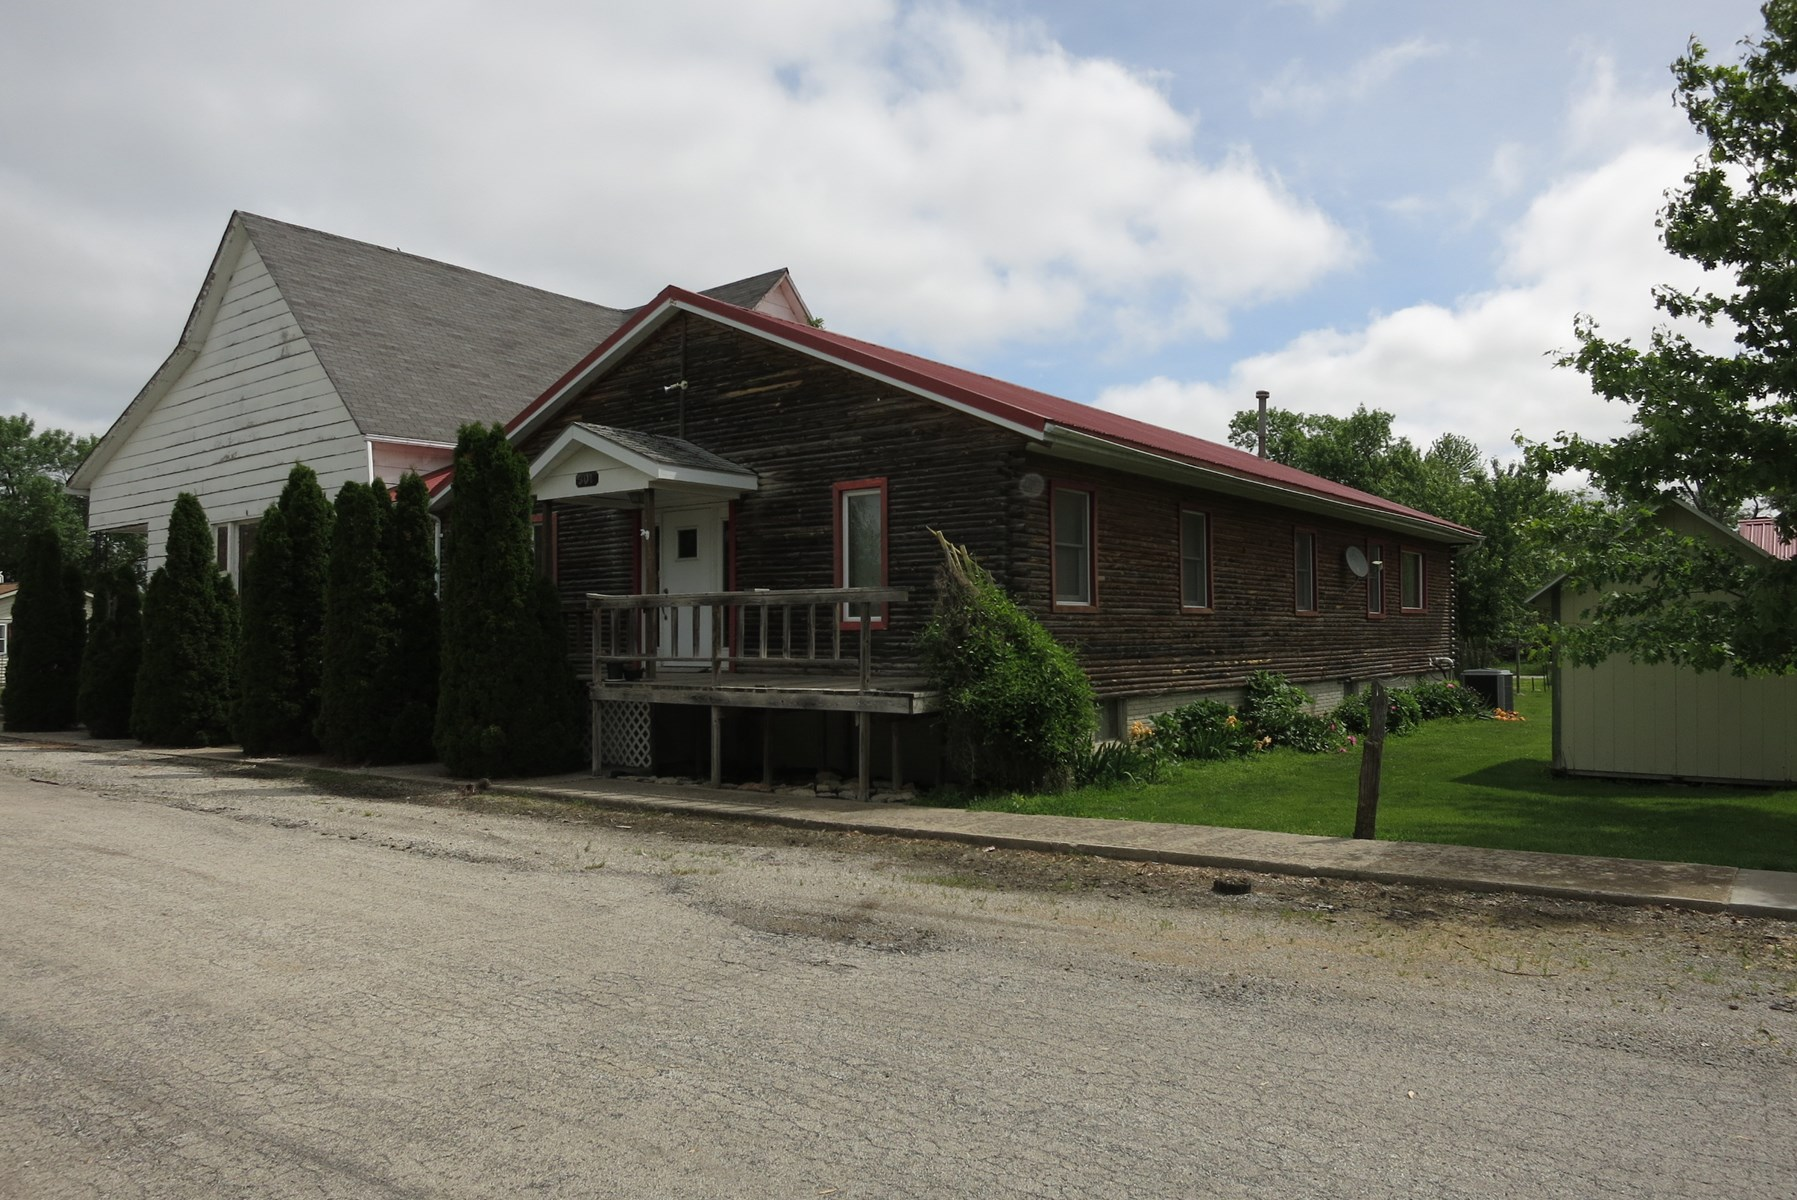 For Sale 4400 sq. ft. House in Small Town